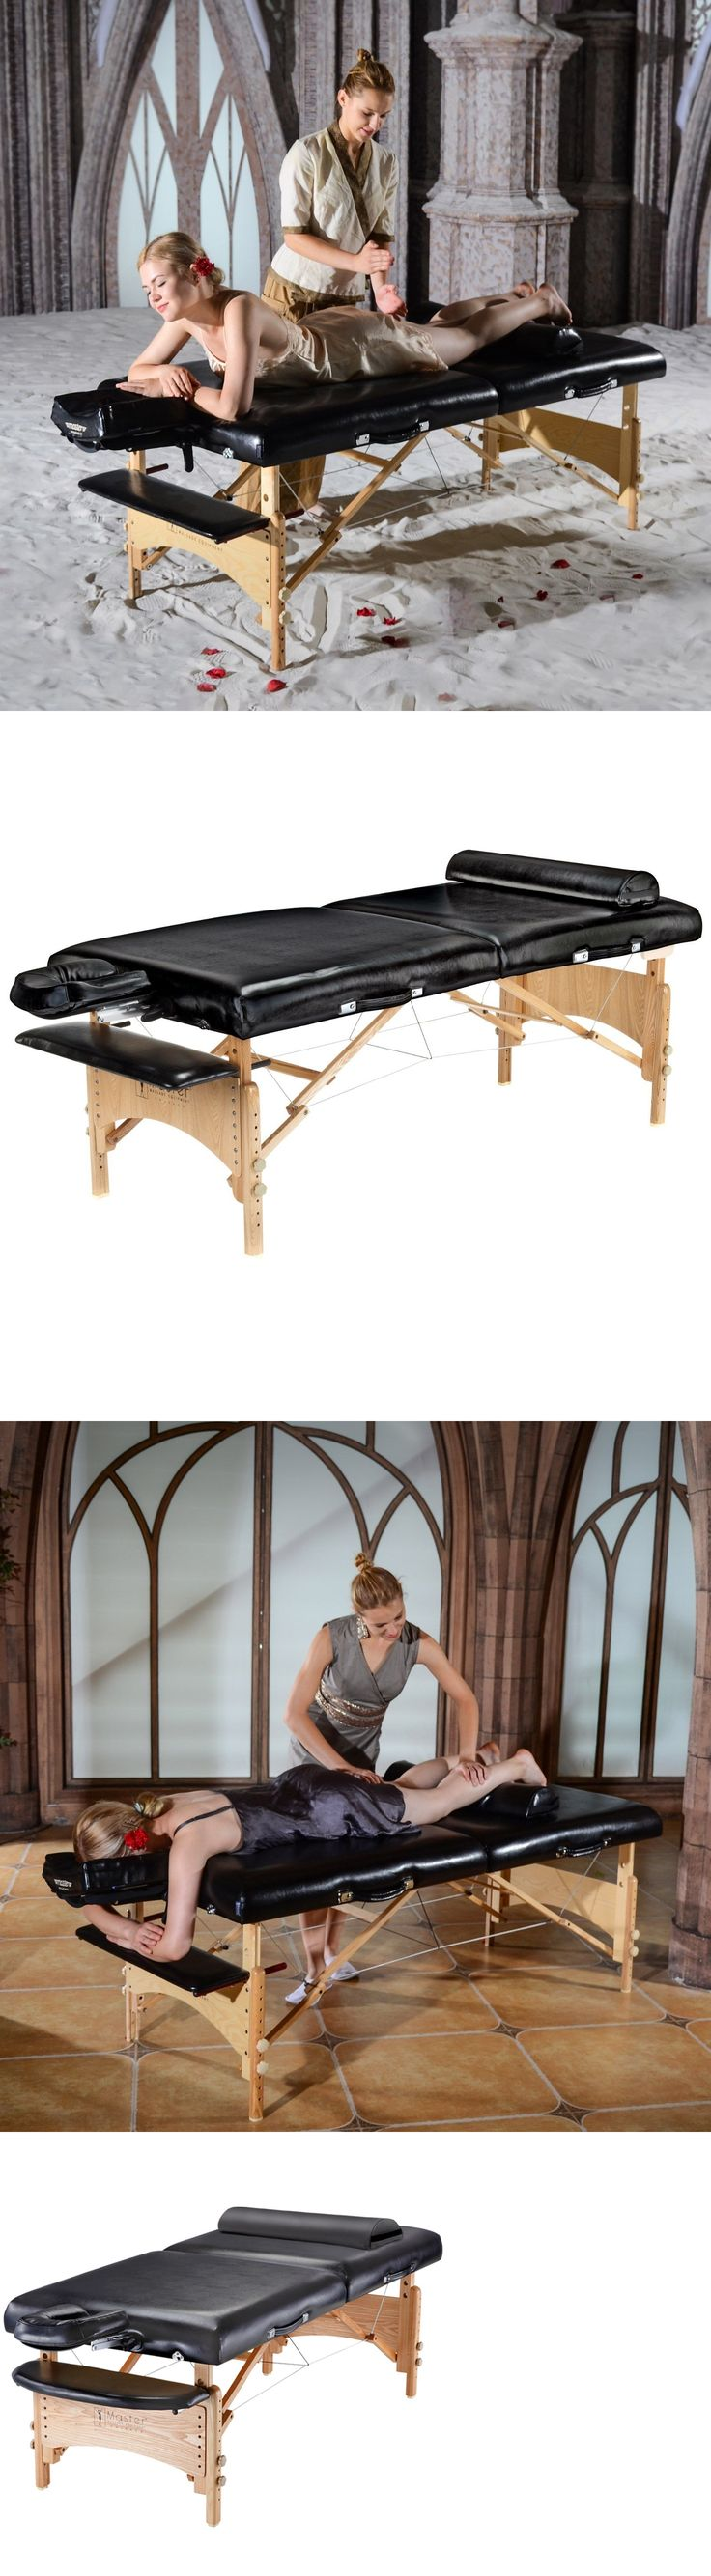 517 best Massage Tables and Chairs images on Pinterest